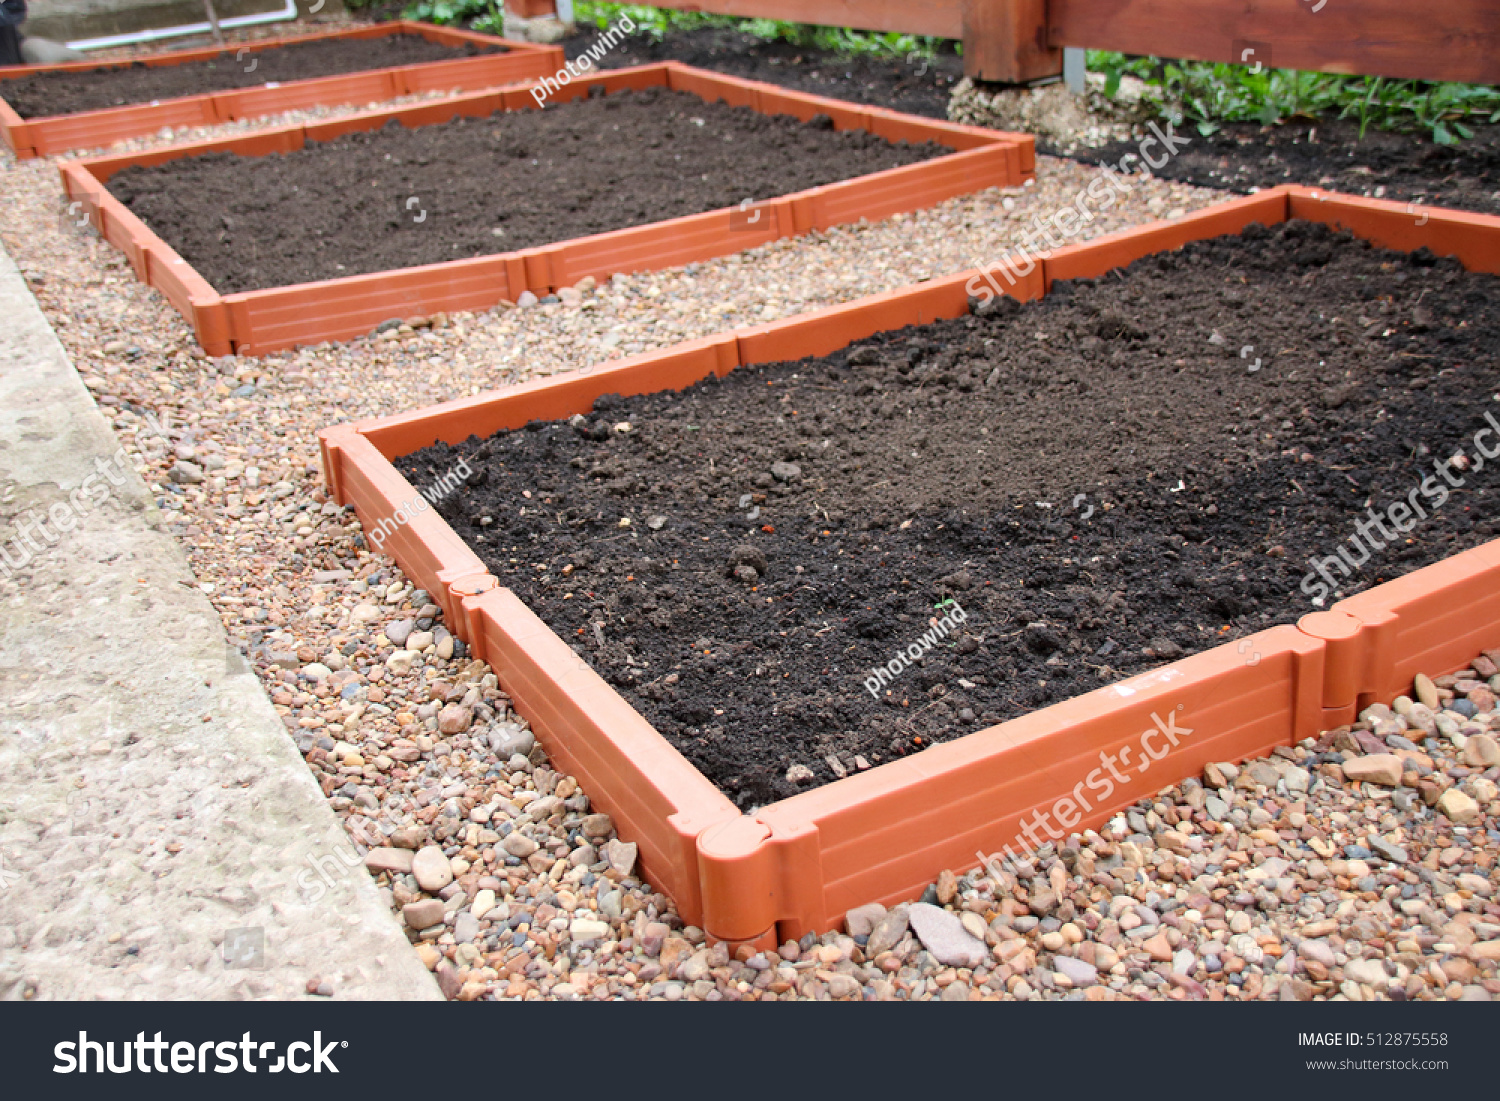 Picture of: Modern Plastic Raised Garden Vegetable Beds Stock Photo Edit Now 512875558